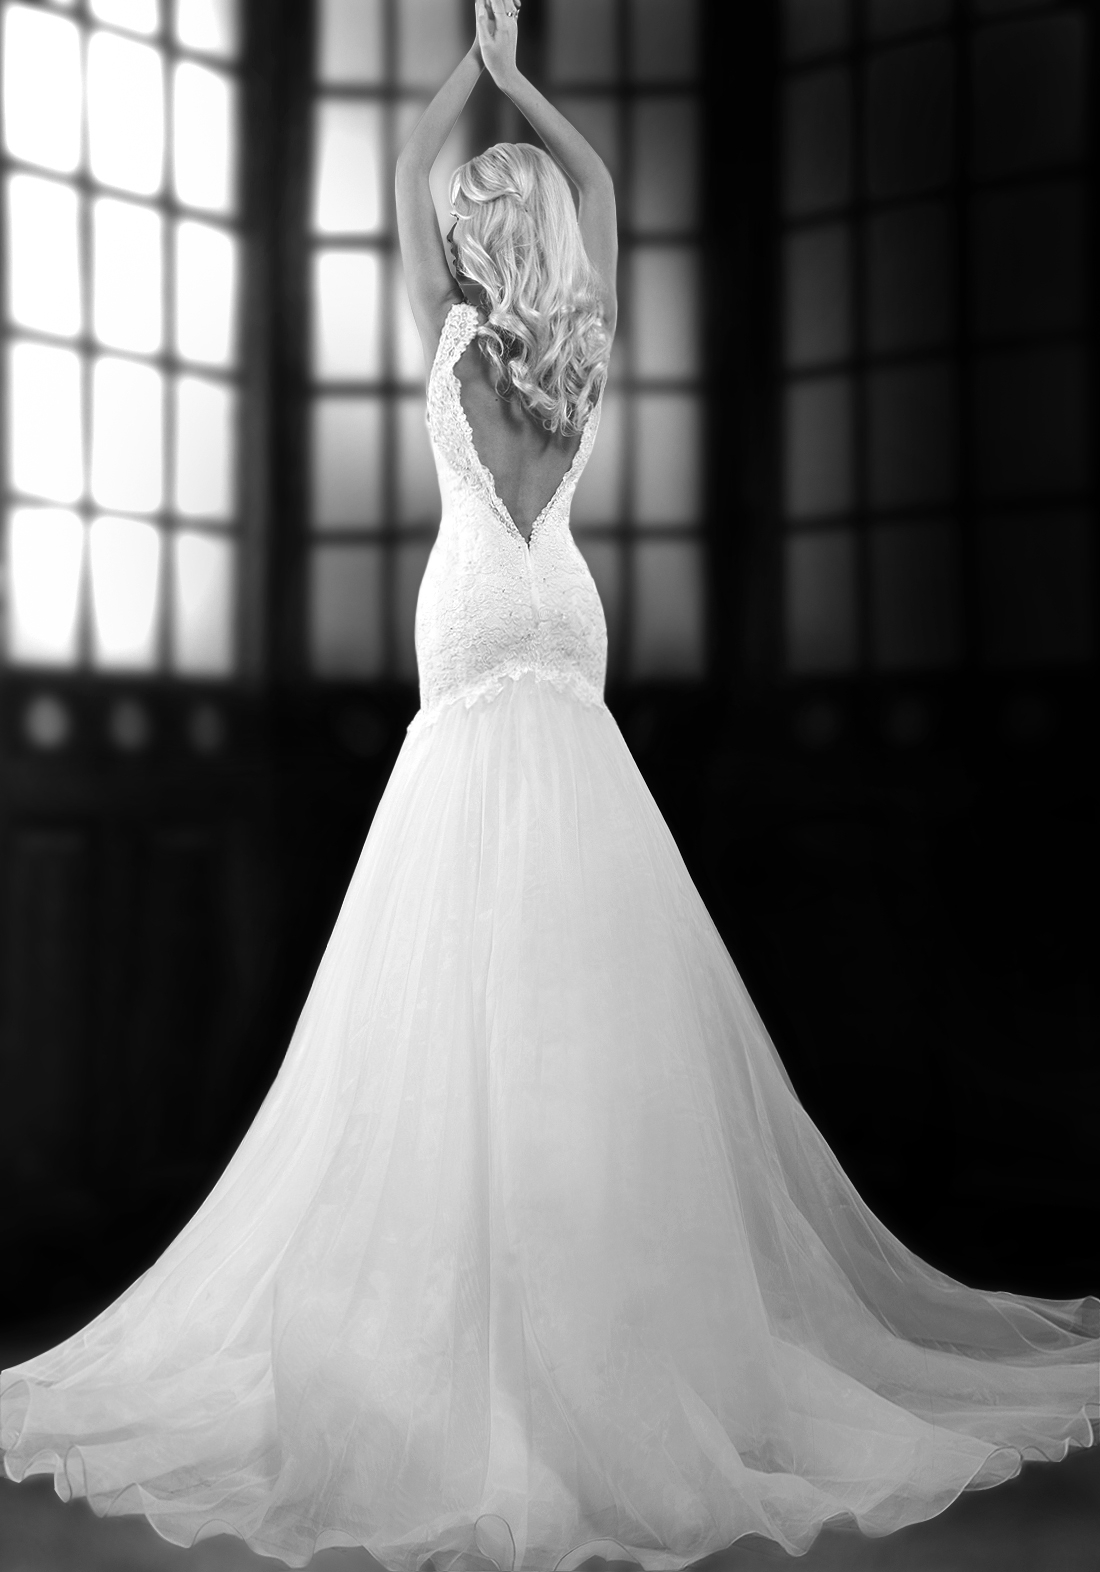 bien-savvy-wedding-dresses-2014-collection-28-01232014